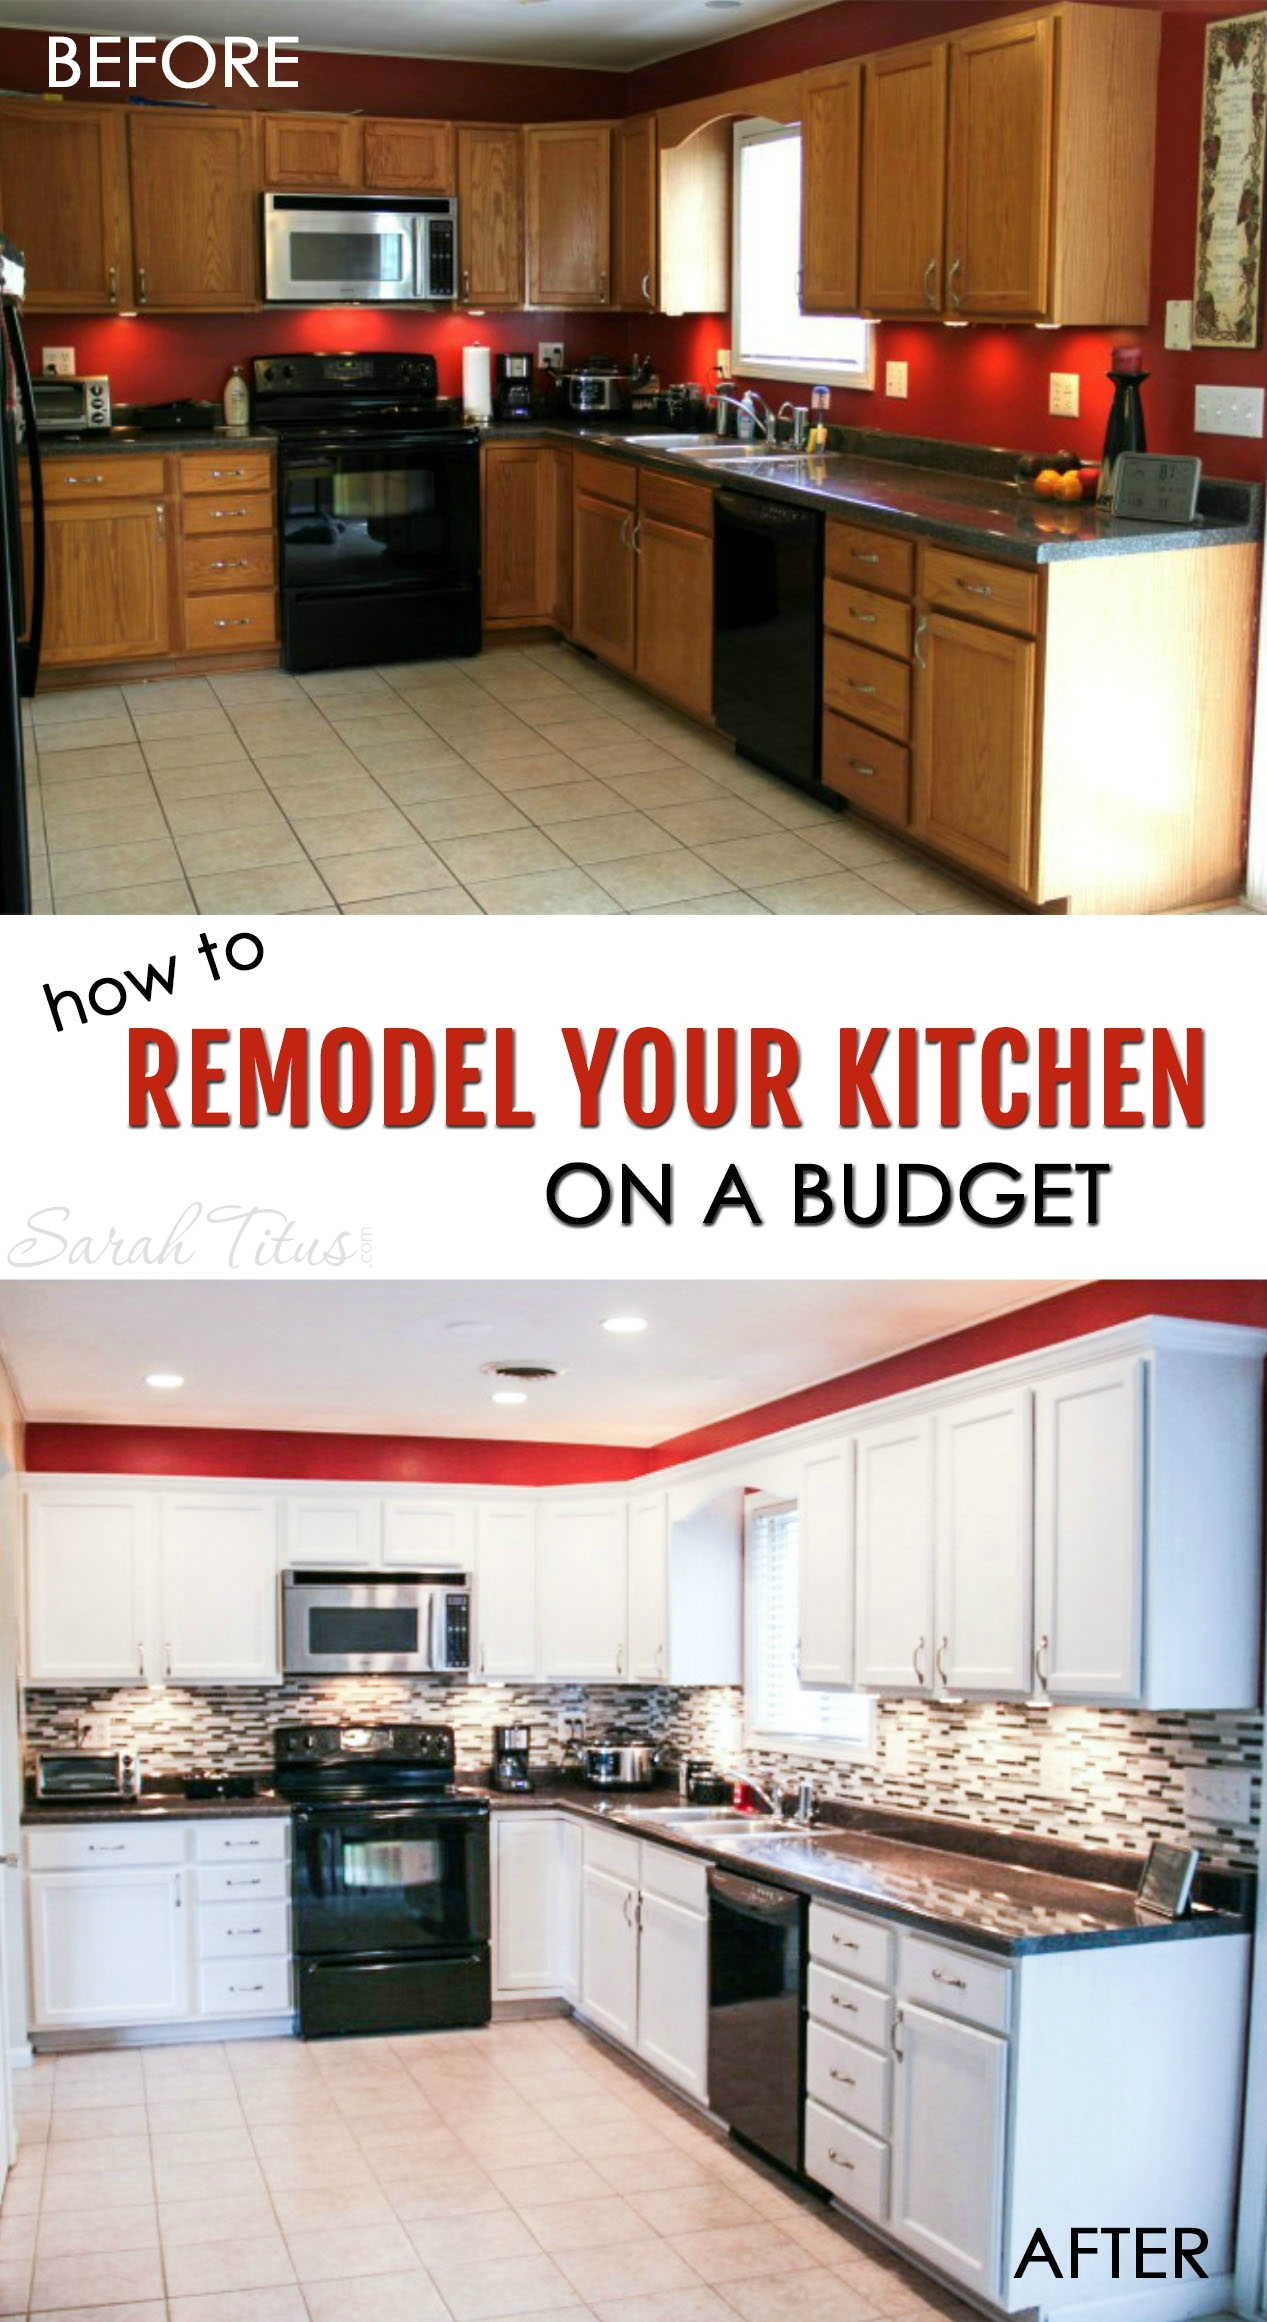 Therefore, a kitchen remodel typically comes into play when things start deteriorating. How To Remodel Your Kitchen On A Budget - Sarah Titus